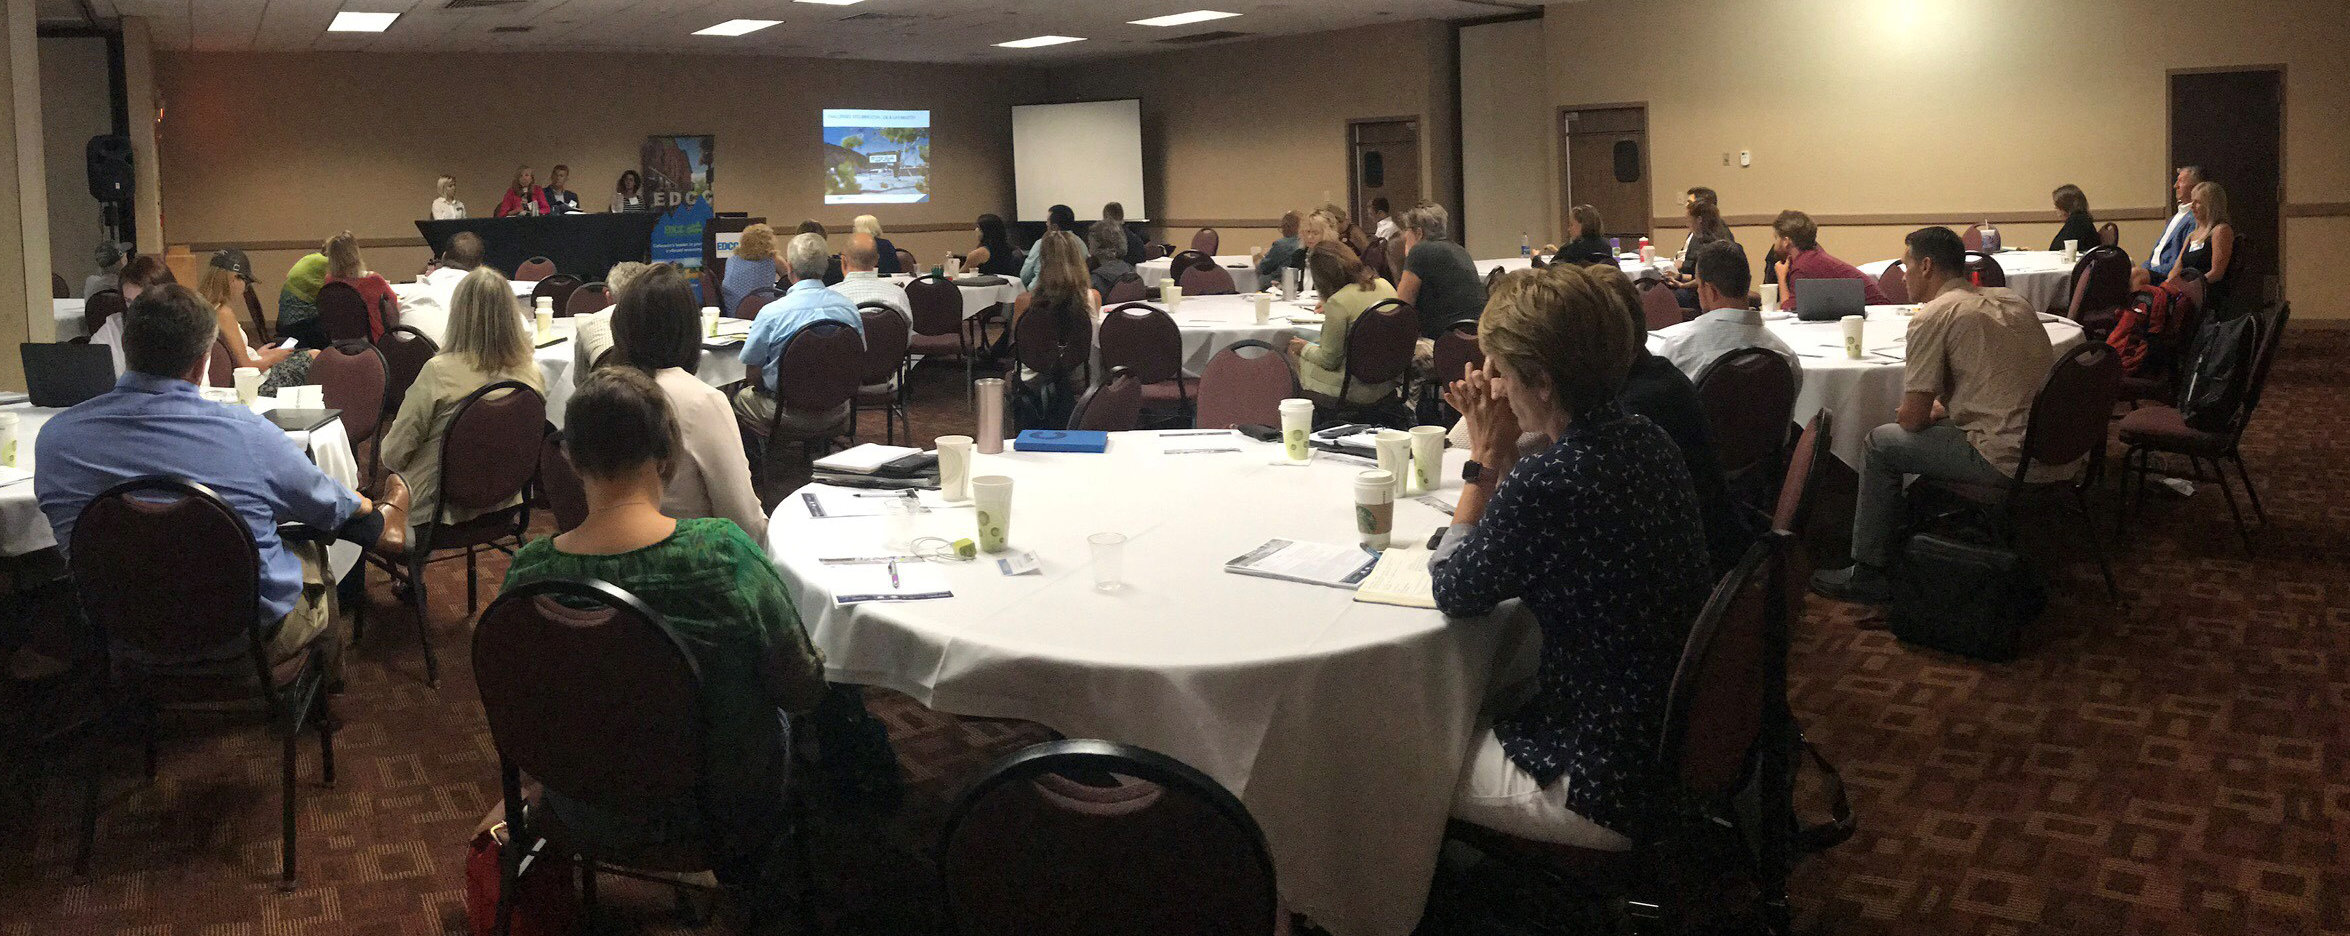 EDCC Holds Regional Economic Development Forum in NW, CO